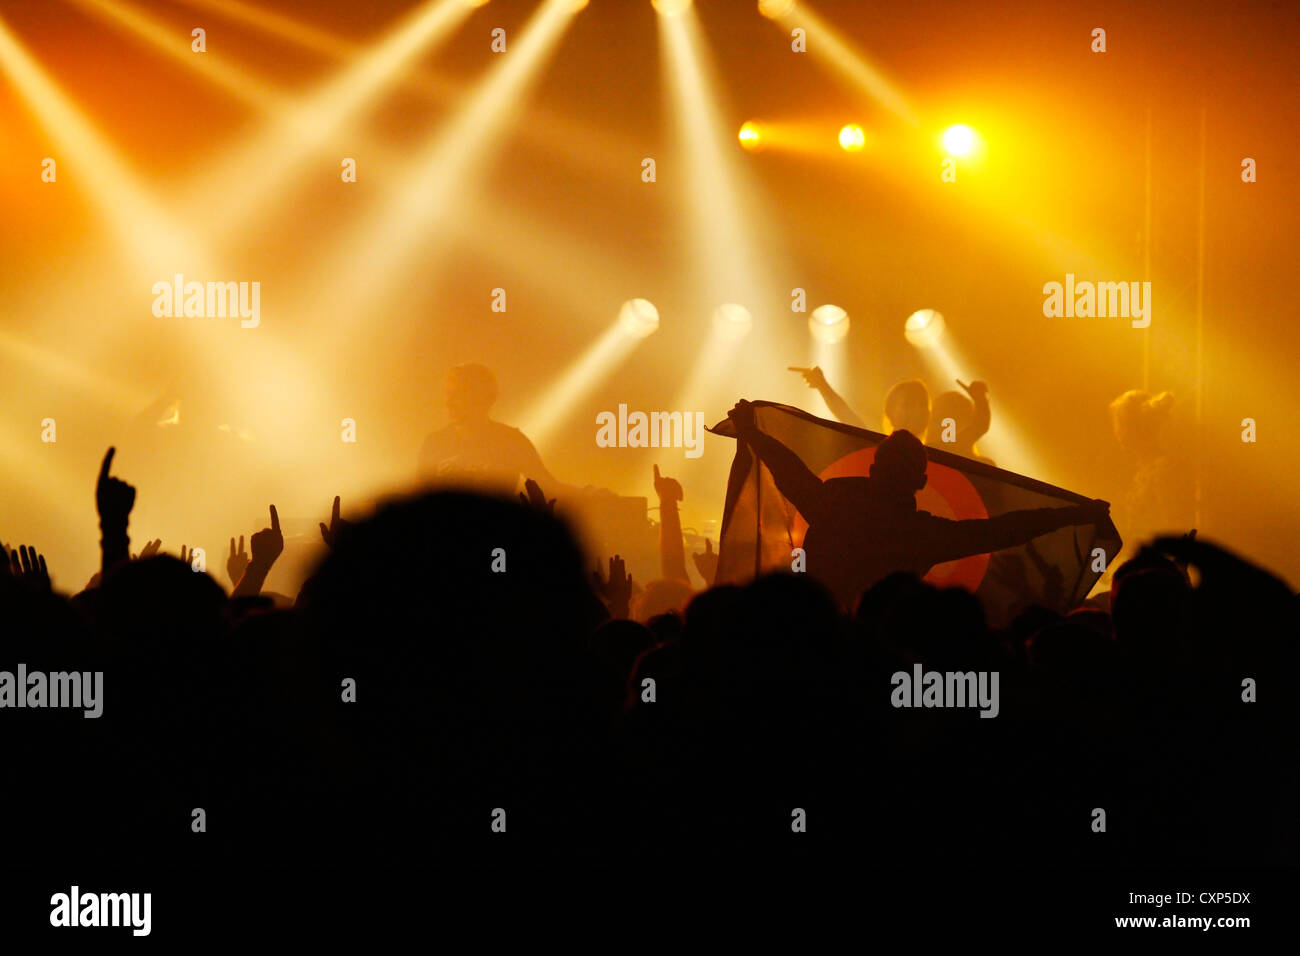 Silhouetted spectators and ambiance during live rock concert with rockers on stage illuminated by spotlights - Stock Image